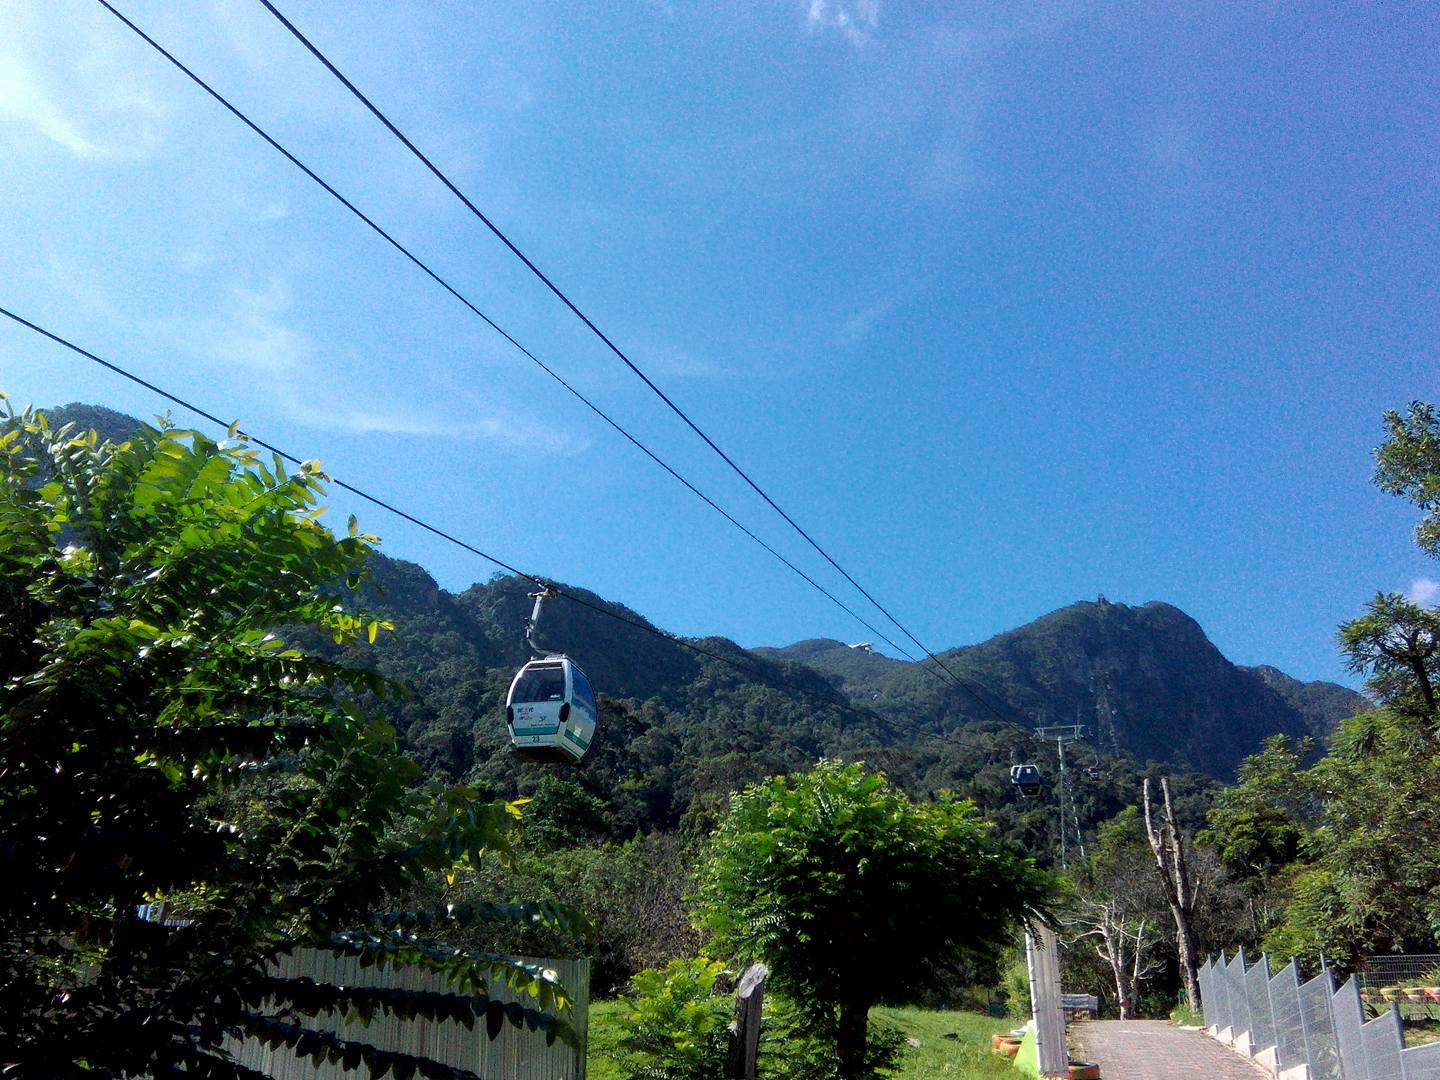 Cable car at The LAngkawi Geopark